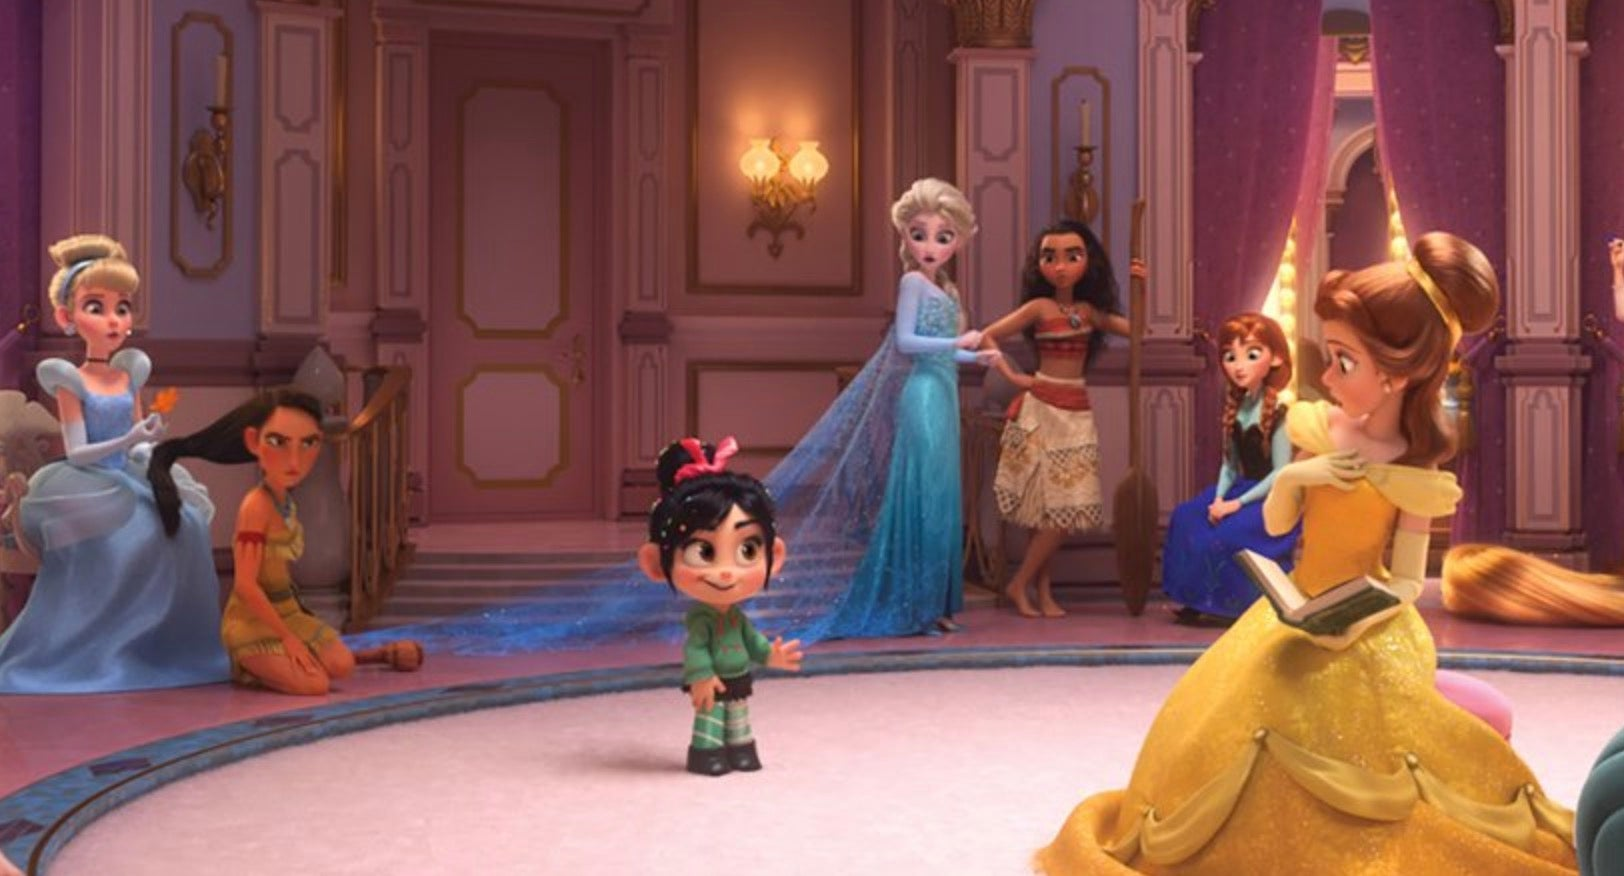 Check Out The First Photo Of Wreck-It Ralph 2'sAmazing Disney Princess Scene